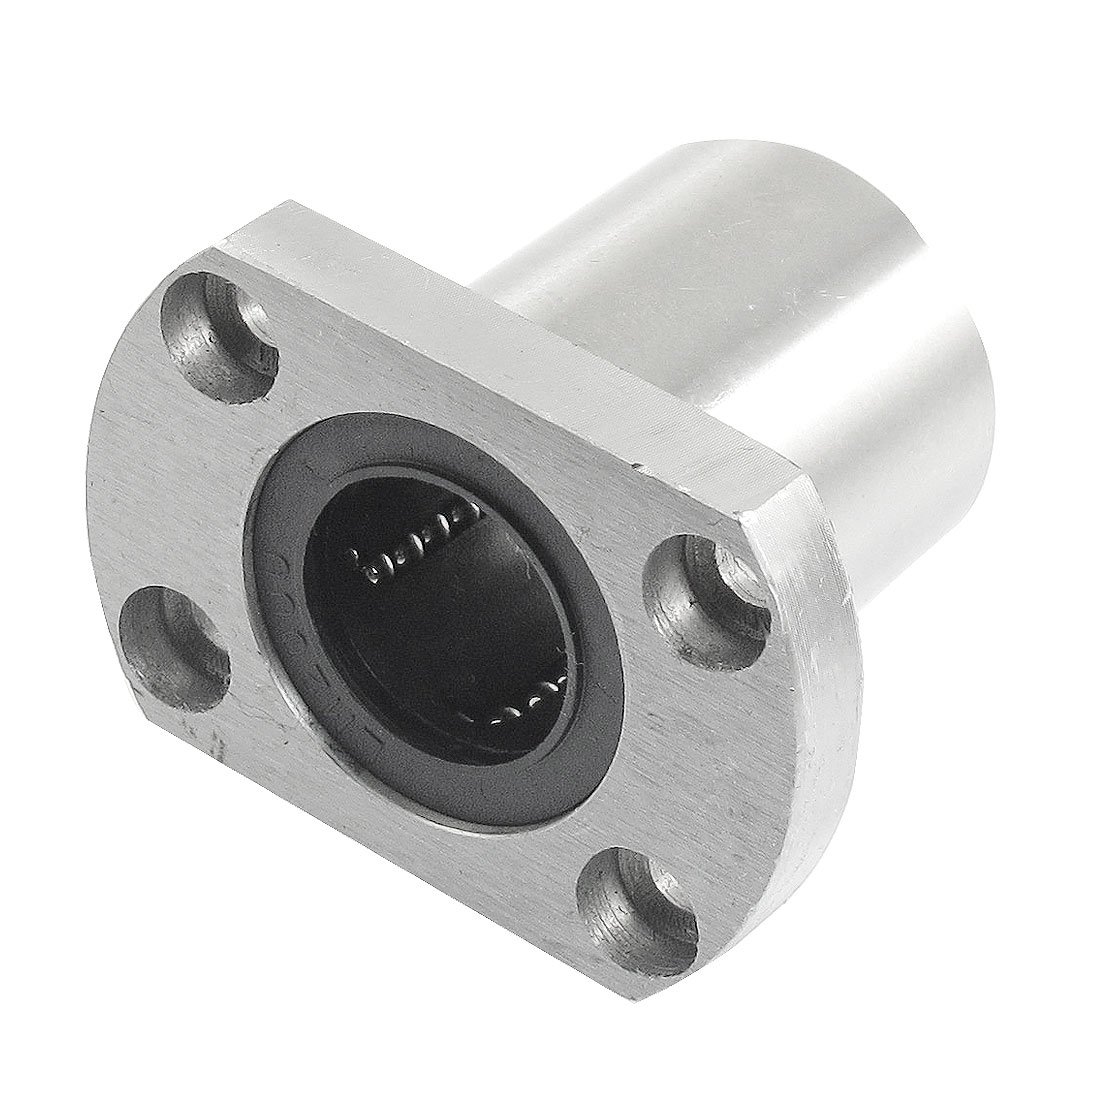 20mm x 32mm x 42mm Oval Flanged Router Linear System Bushing Bearing